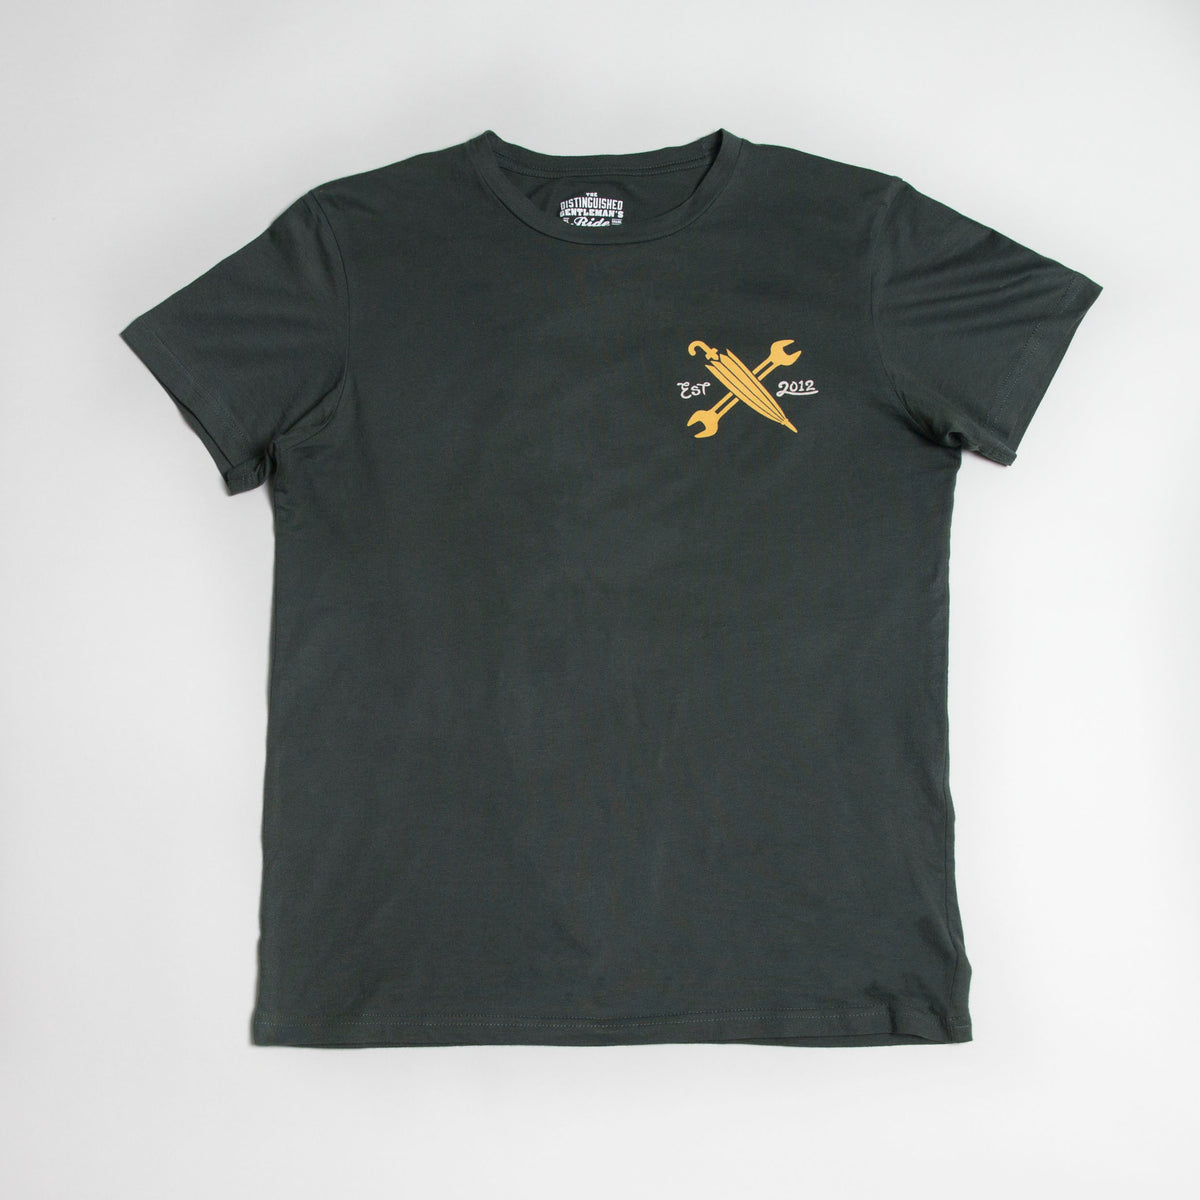 The DGR Heritage Tee - Green